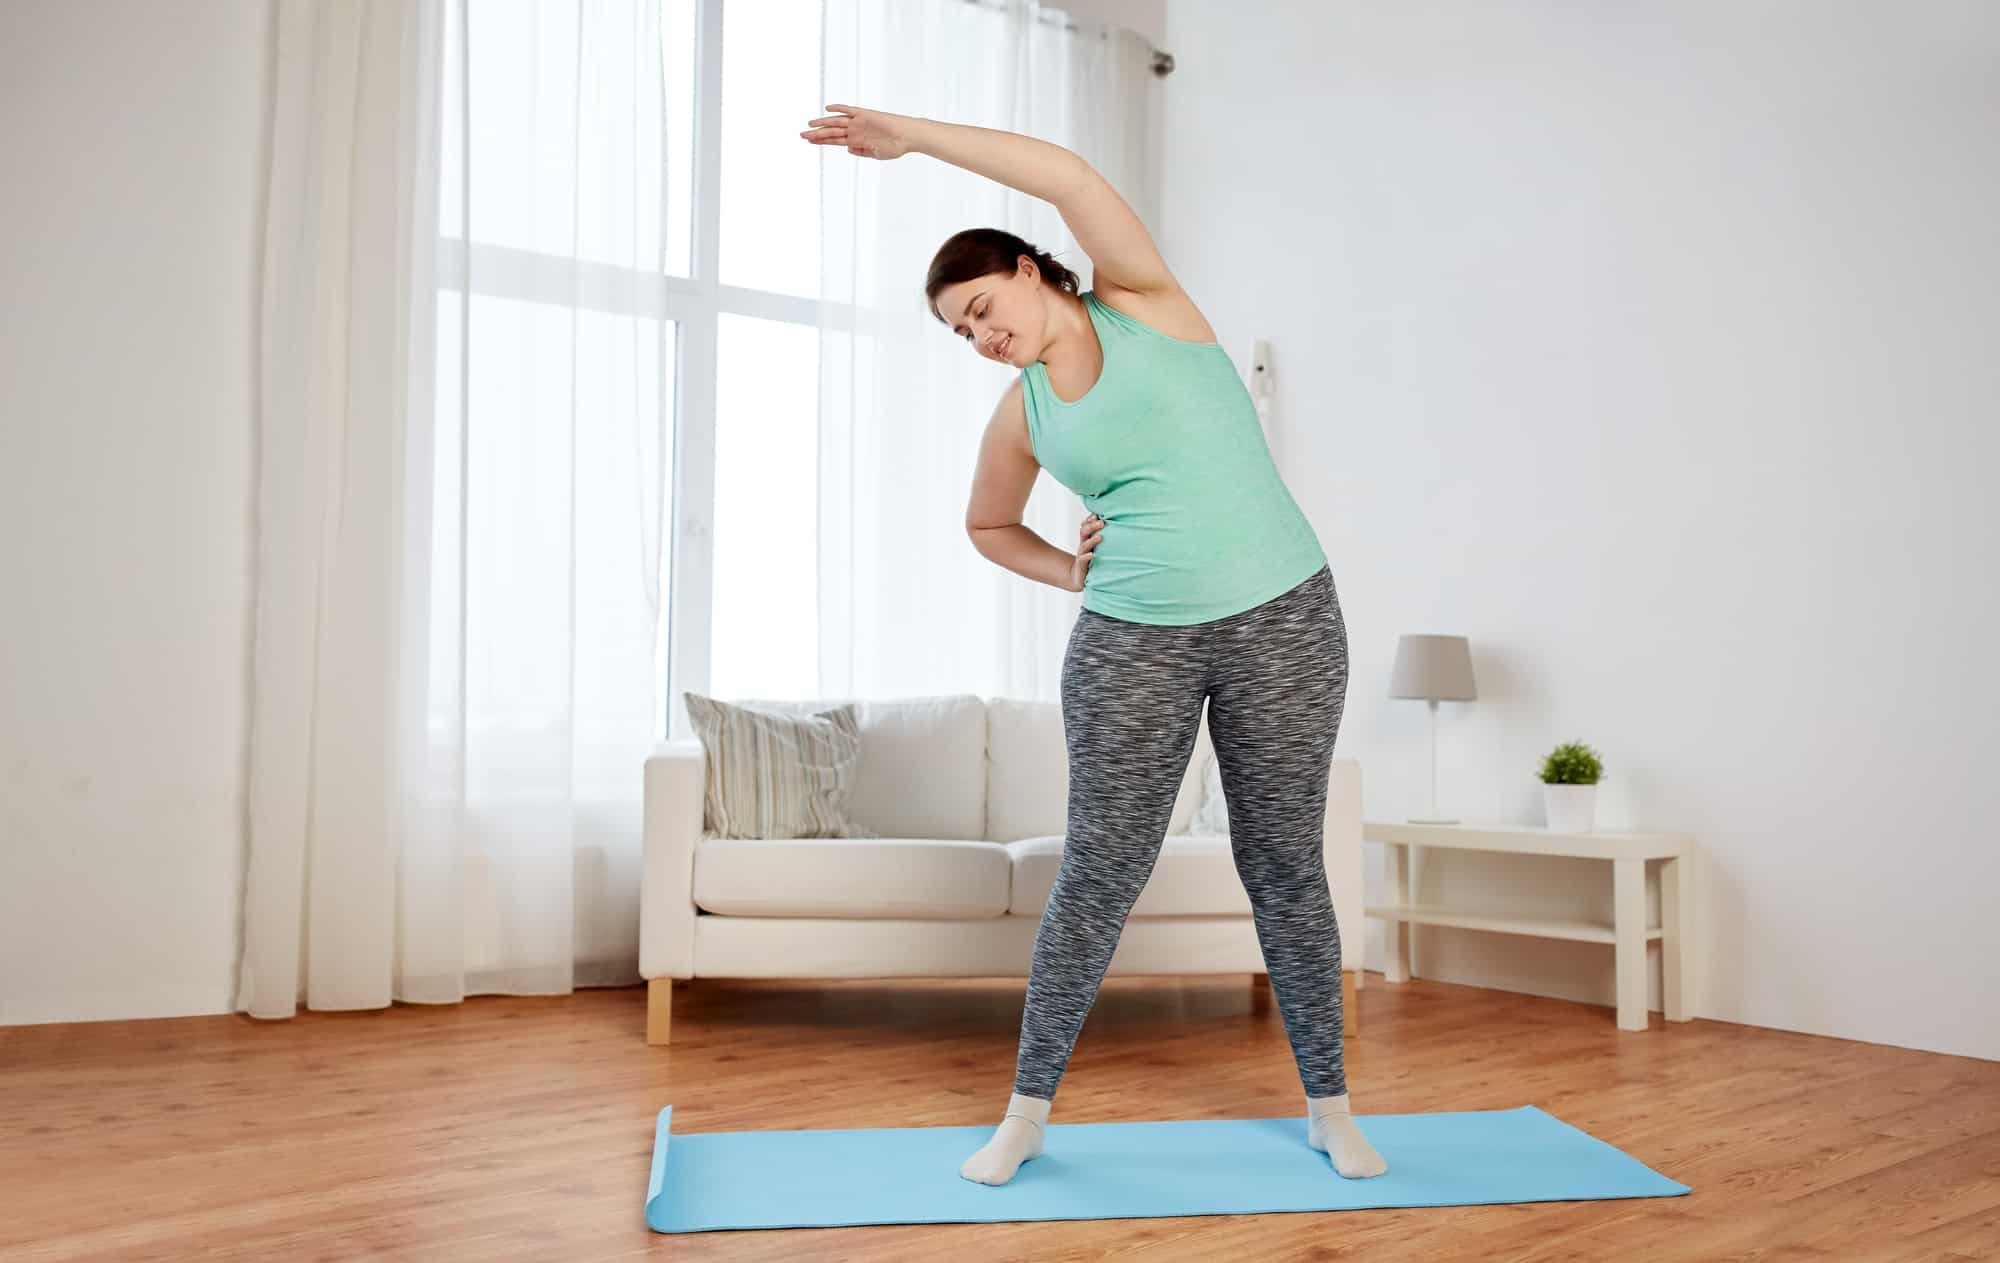 plus size woman exercising on mat at home